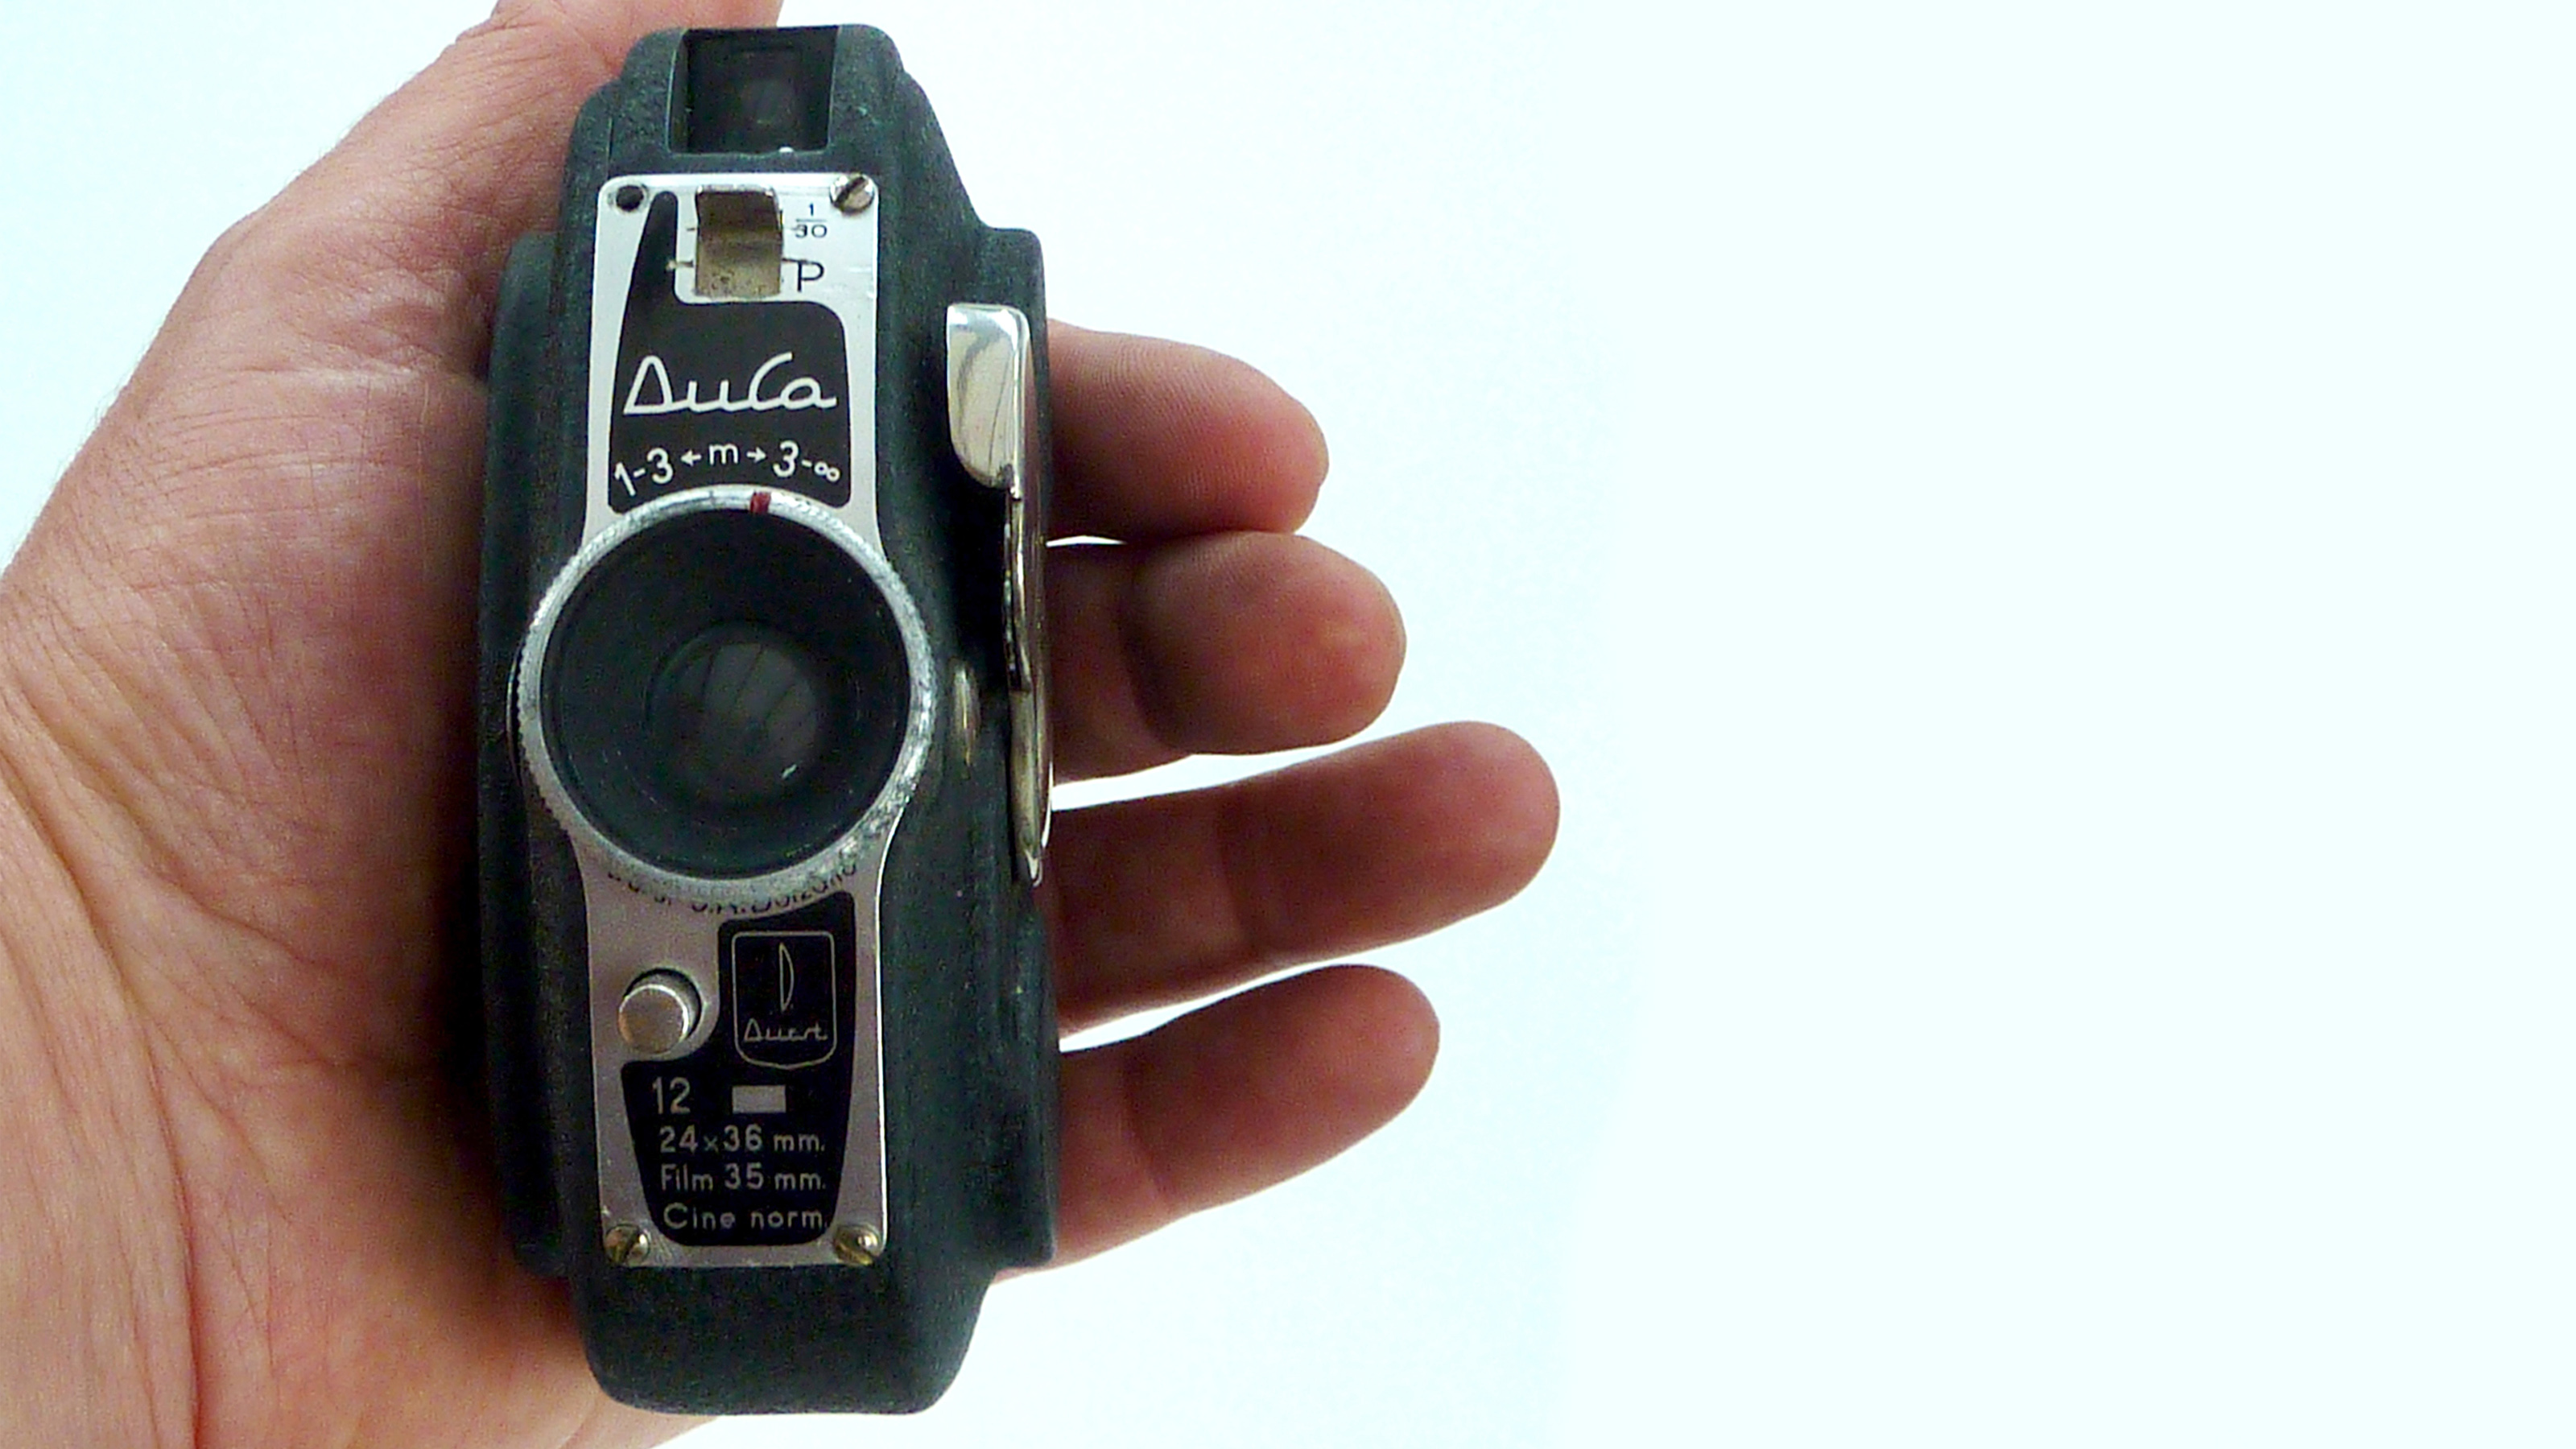 A hand holding the Durst Duca camera